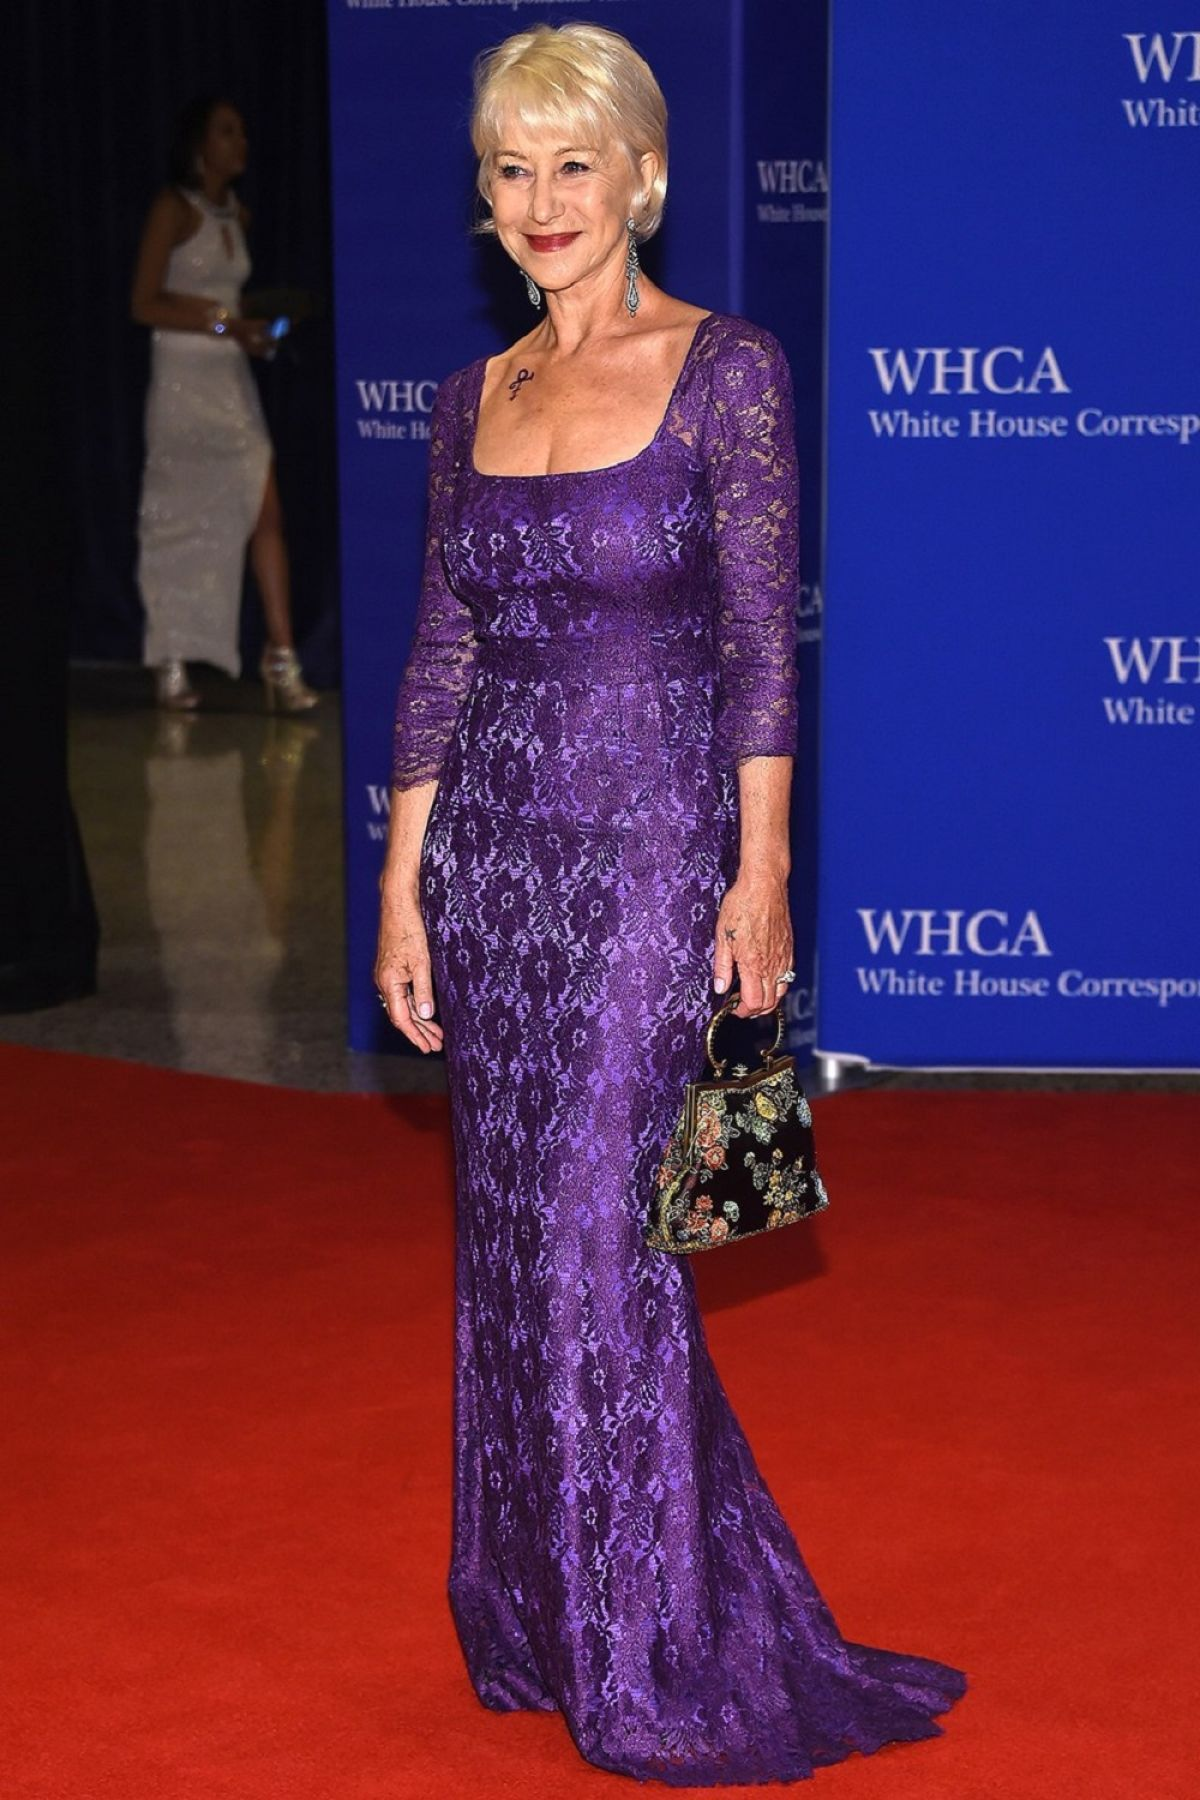 HELEN MIRREN at White House Correspondents' Dinner in Washington 04/30/2016